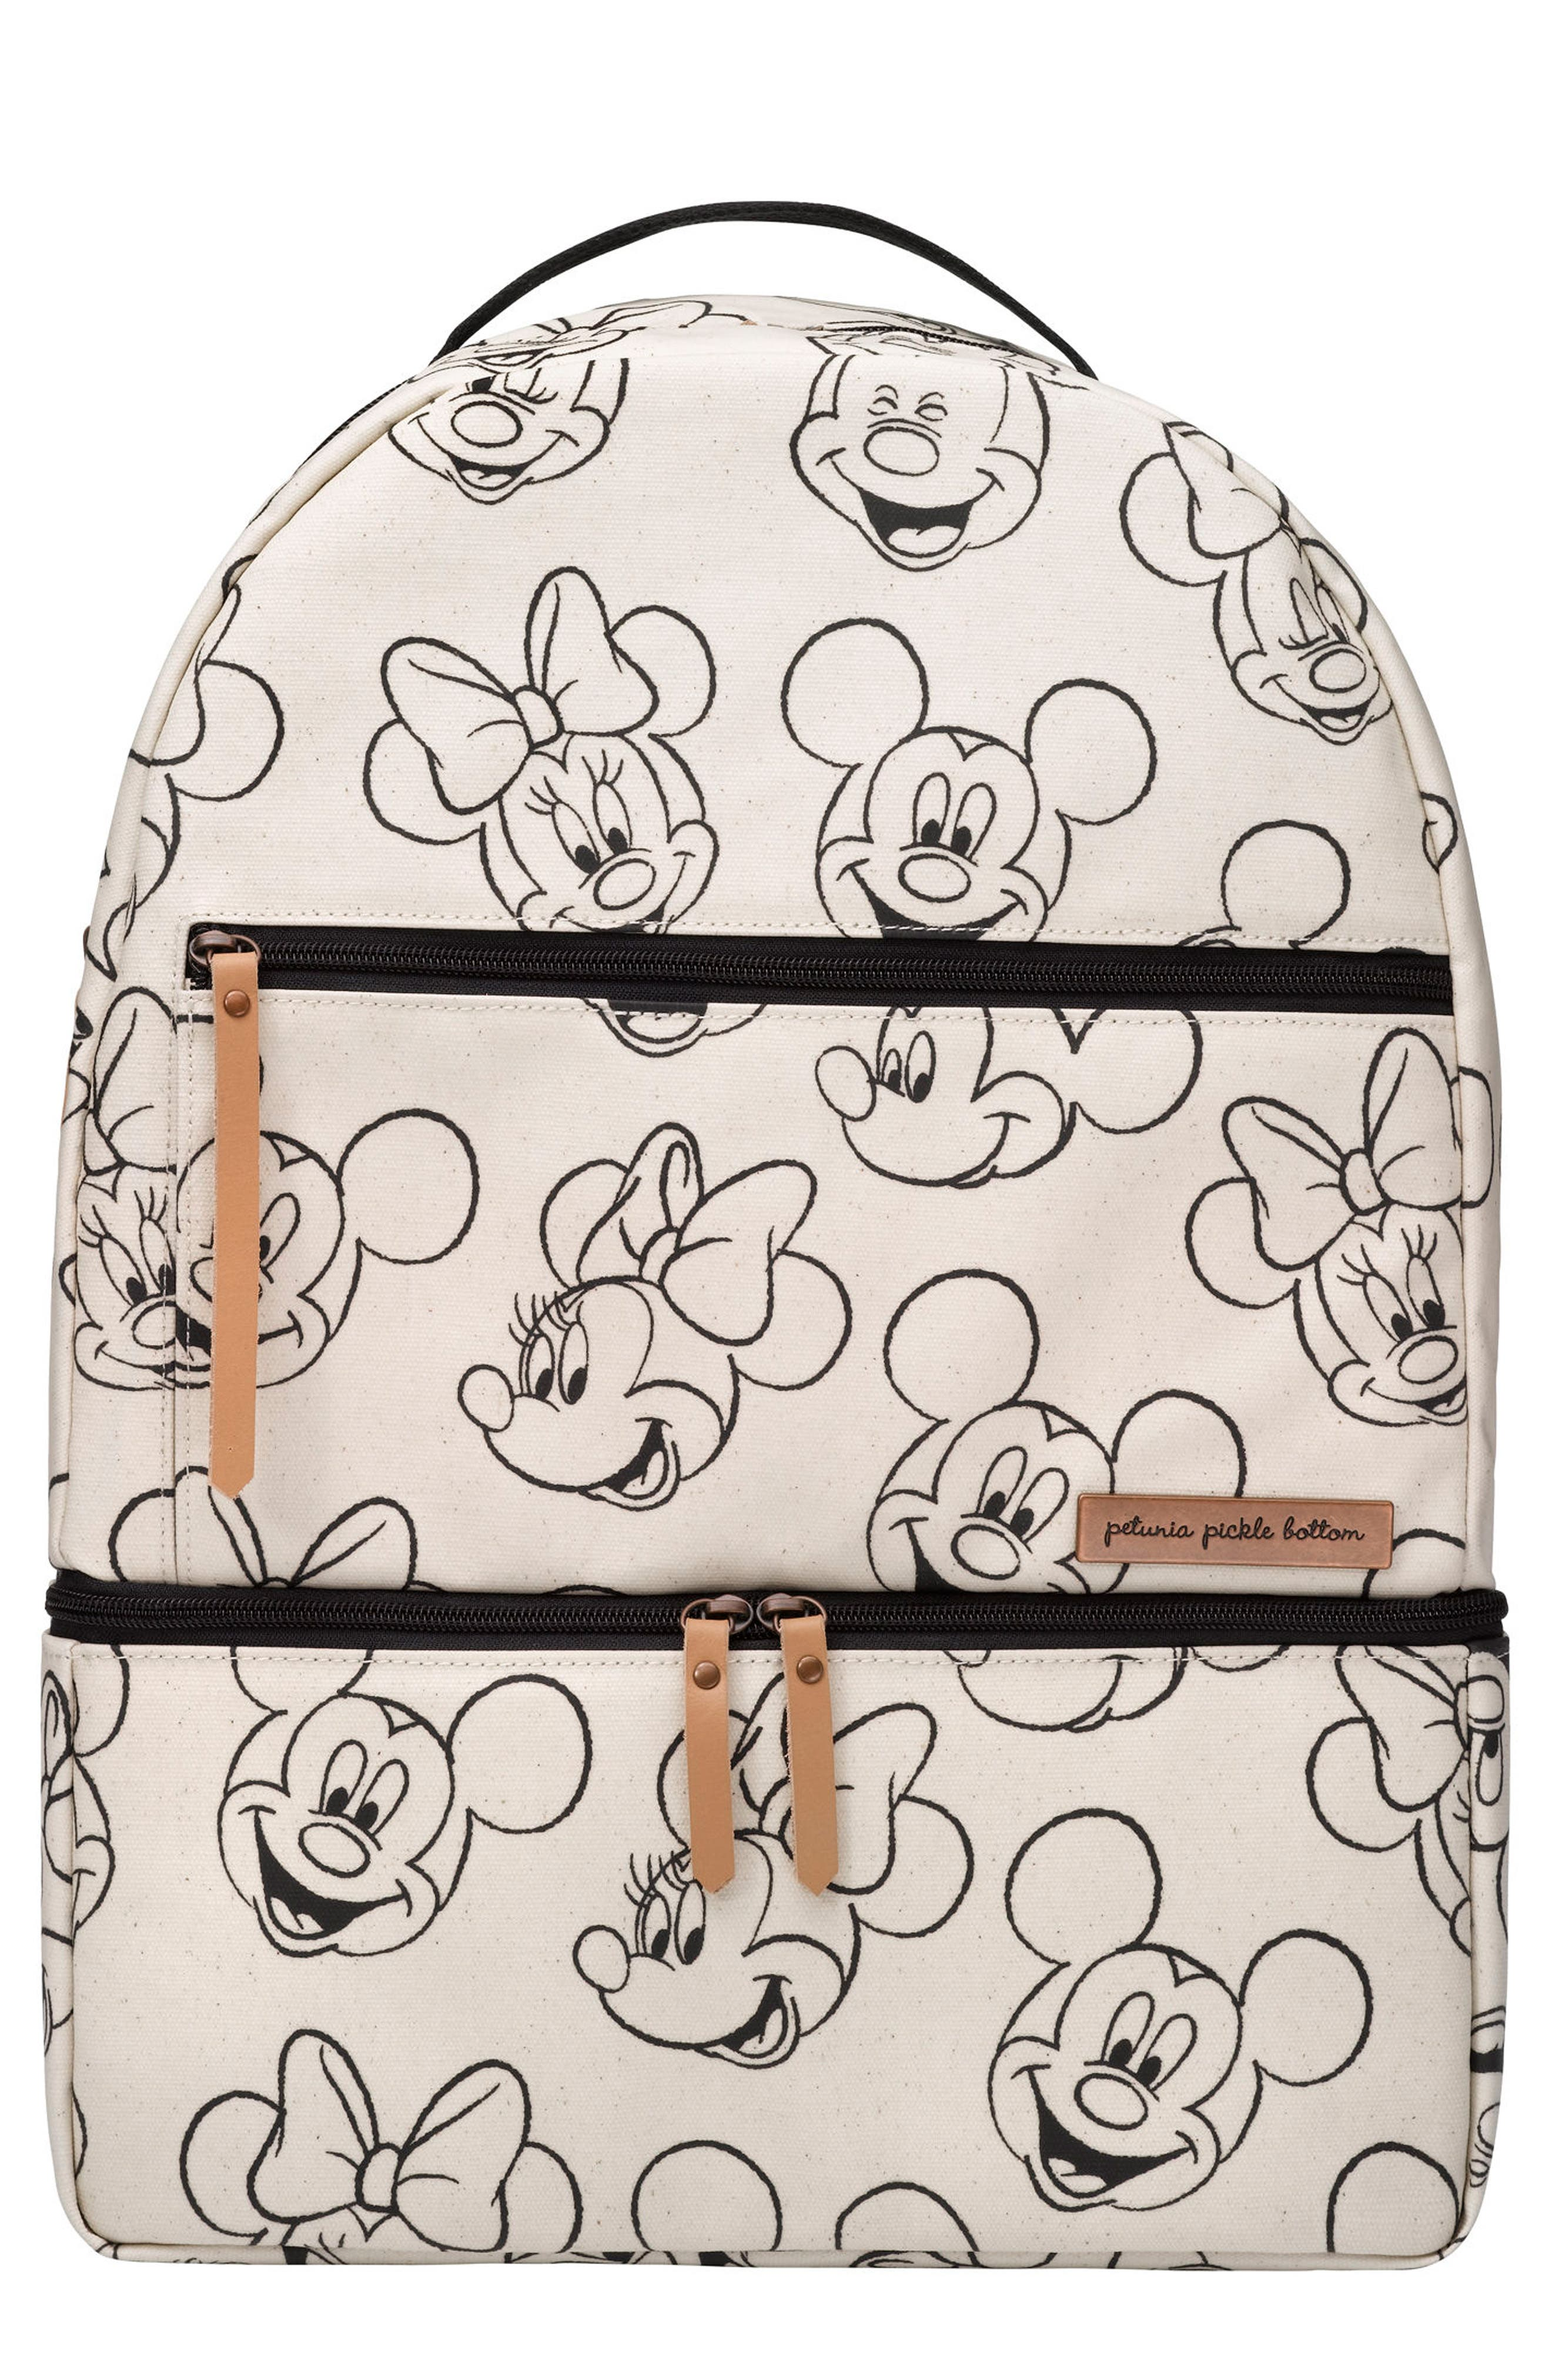 x Disney<sup>®</sup> Axis Backpack,                         Main,                         color, SKETCHBOOK MICKEY AND MINNIE